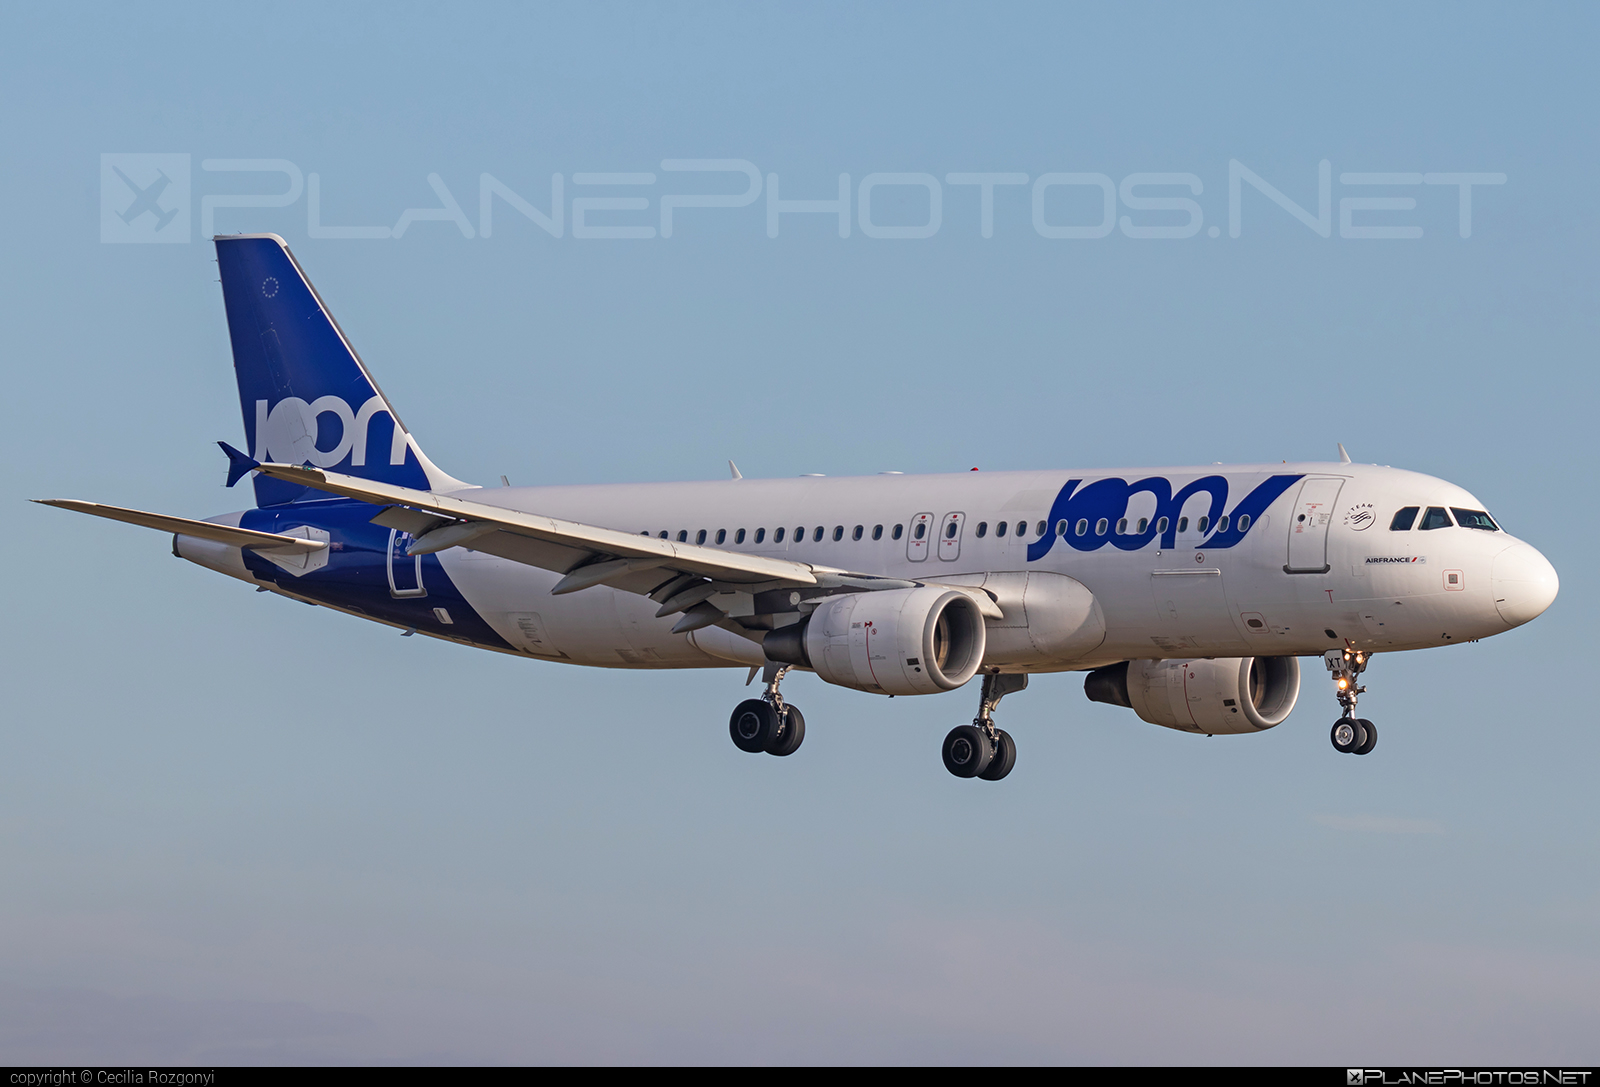 Airbus A320-214 - F-GKXT operated by Joon #a320 #a320family #airbus #airbus320 #joon